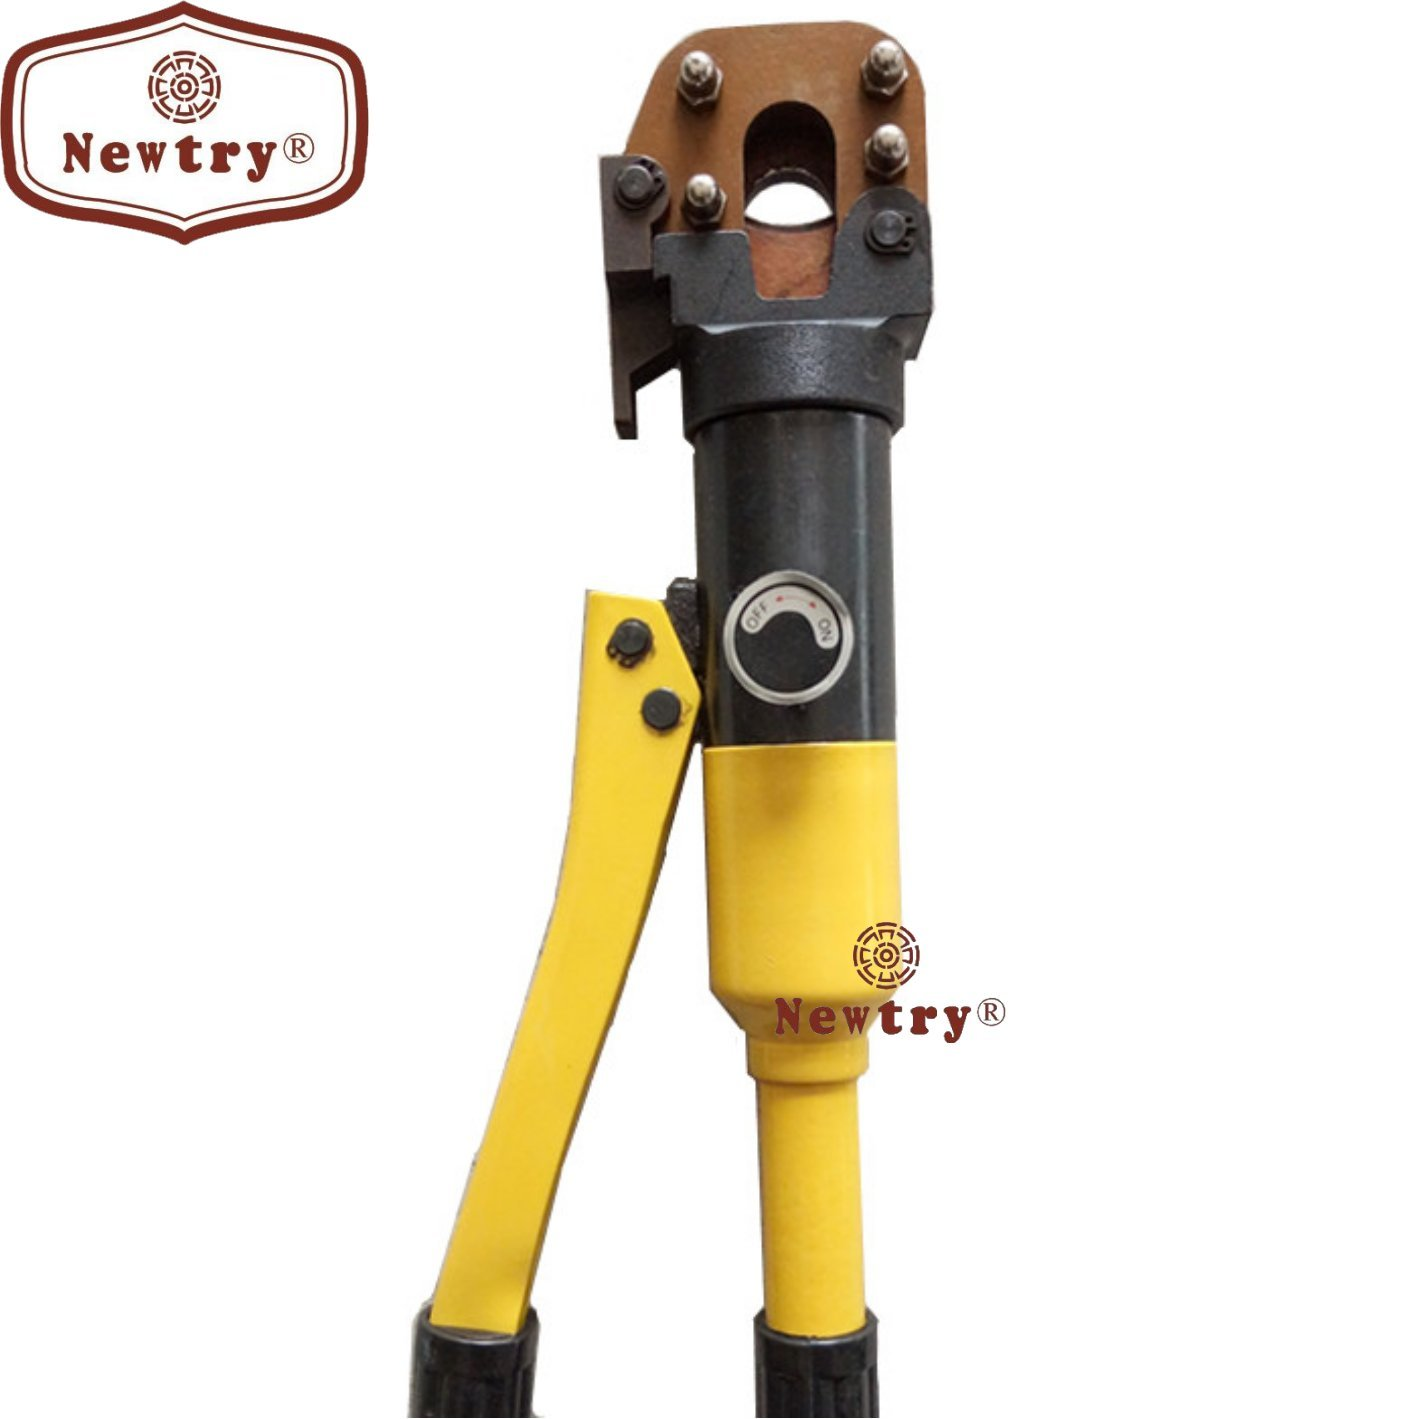 Newtry CPC-20A dia 20mm Hydraulic cable cutter cutting tool/Steel rope/Mild iron rod/Rebar/Copper stranded wire/Aluminum wire/Armour cable/ASCR